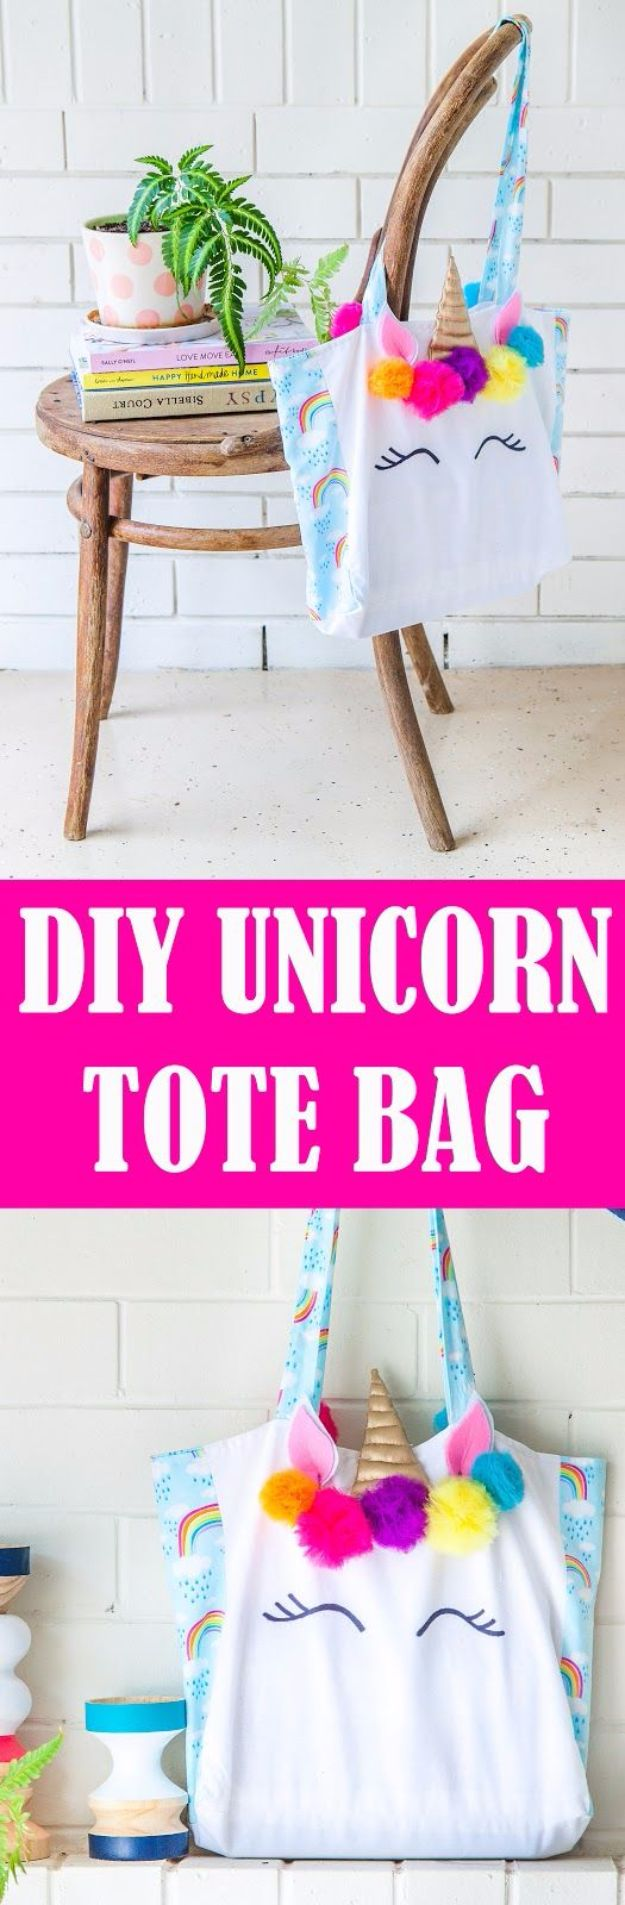 DIY Ideas With Unicorns - Unicorn Tote Bag - Cute and Easy DIY Projects for Unicorn Lovers - Wall and Home Decor Projects, Things To Make and Sell on Etsy - Quick Gifts to Make for Friends and Family - Homemade No Sew Projects and Pillows - Fun Jewelry, Desk Decor Cool Clothes and Accessories